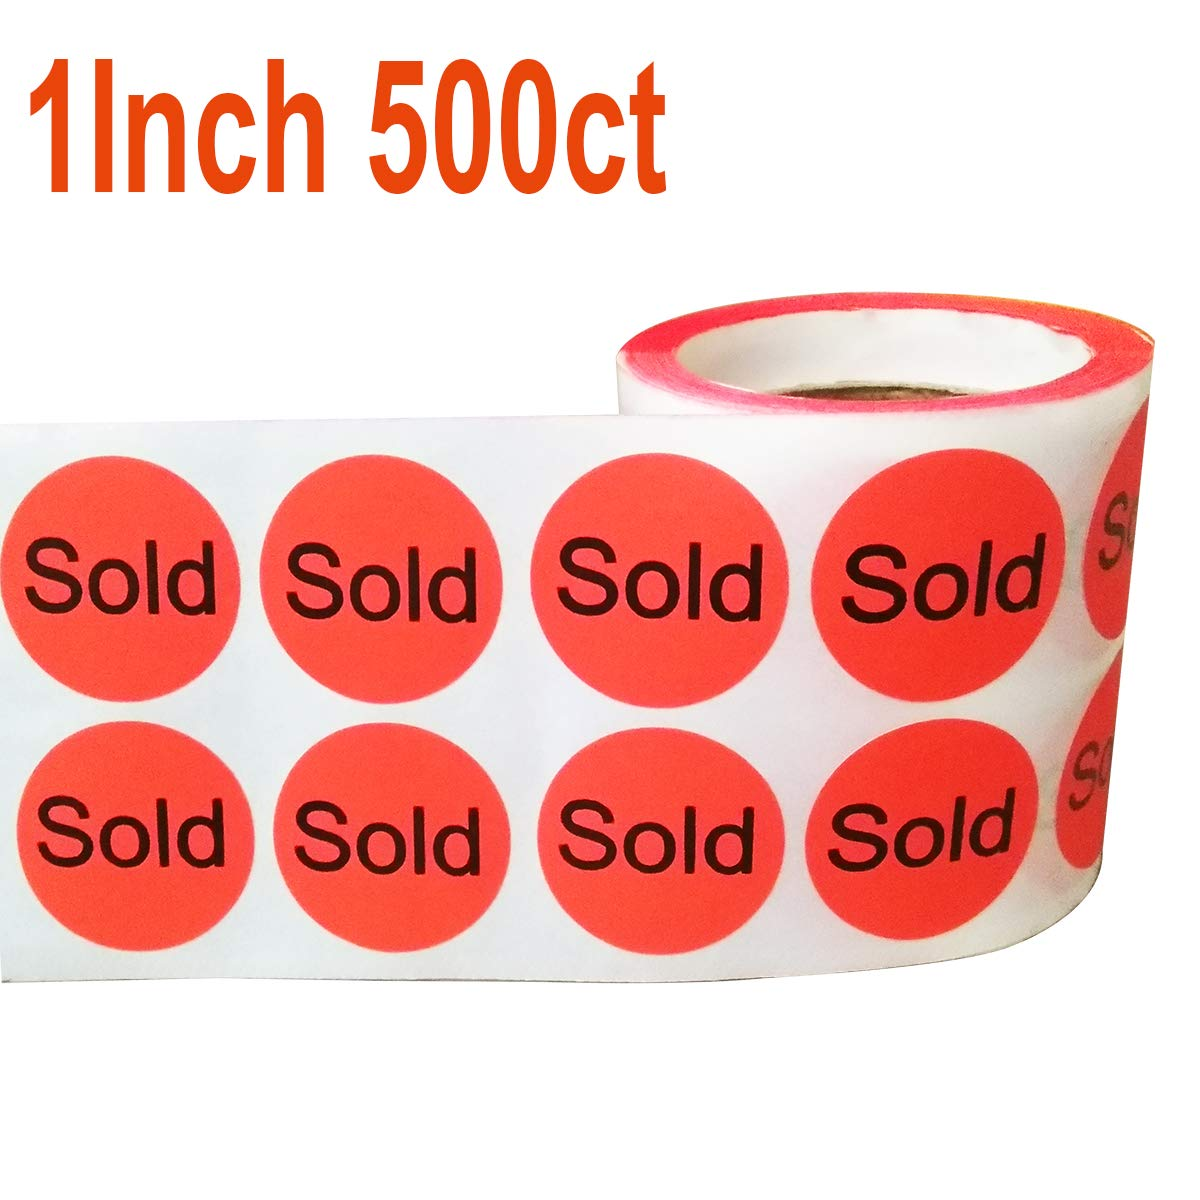 Wootile 500 1' Stickers/Labels'Sold' Red Stickers Labels Retail Sold (1 inch)